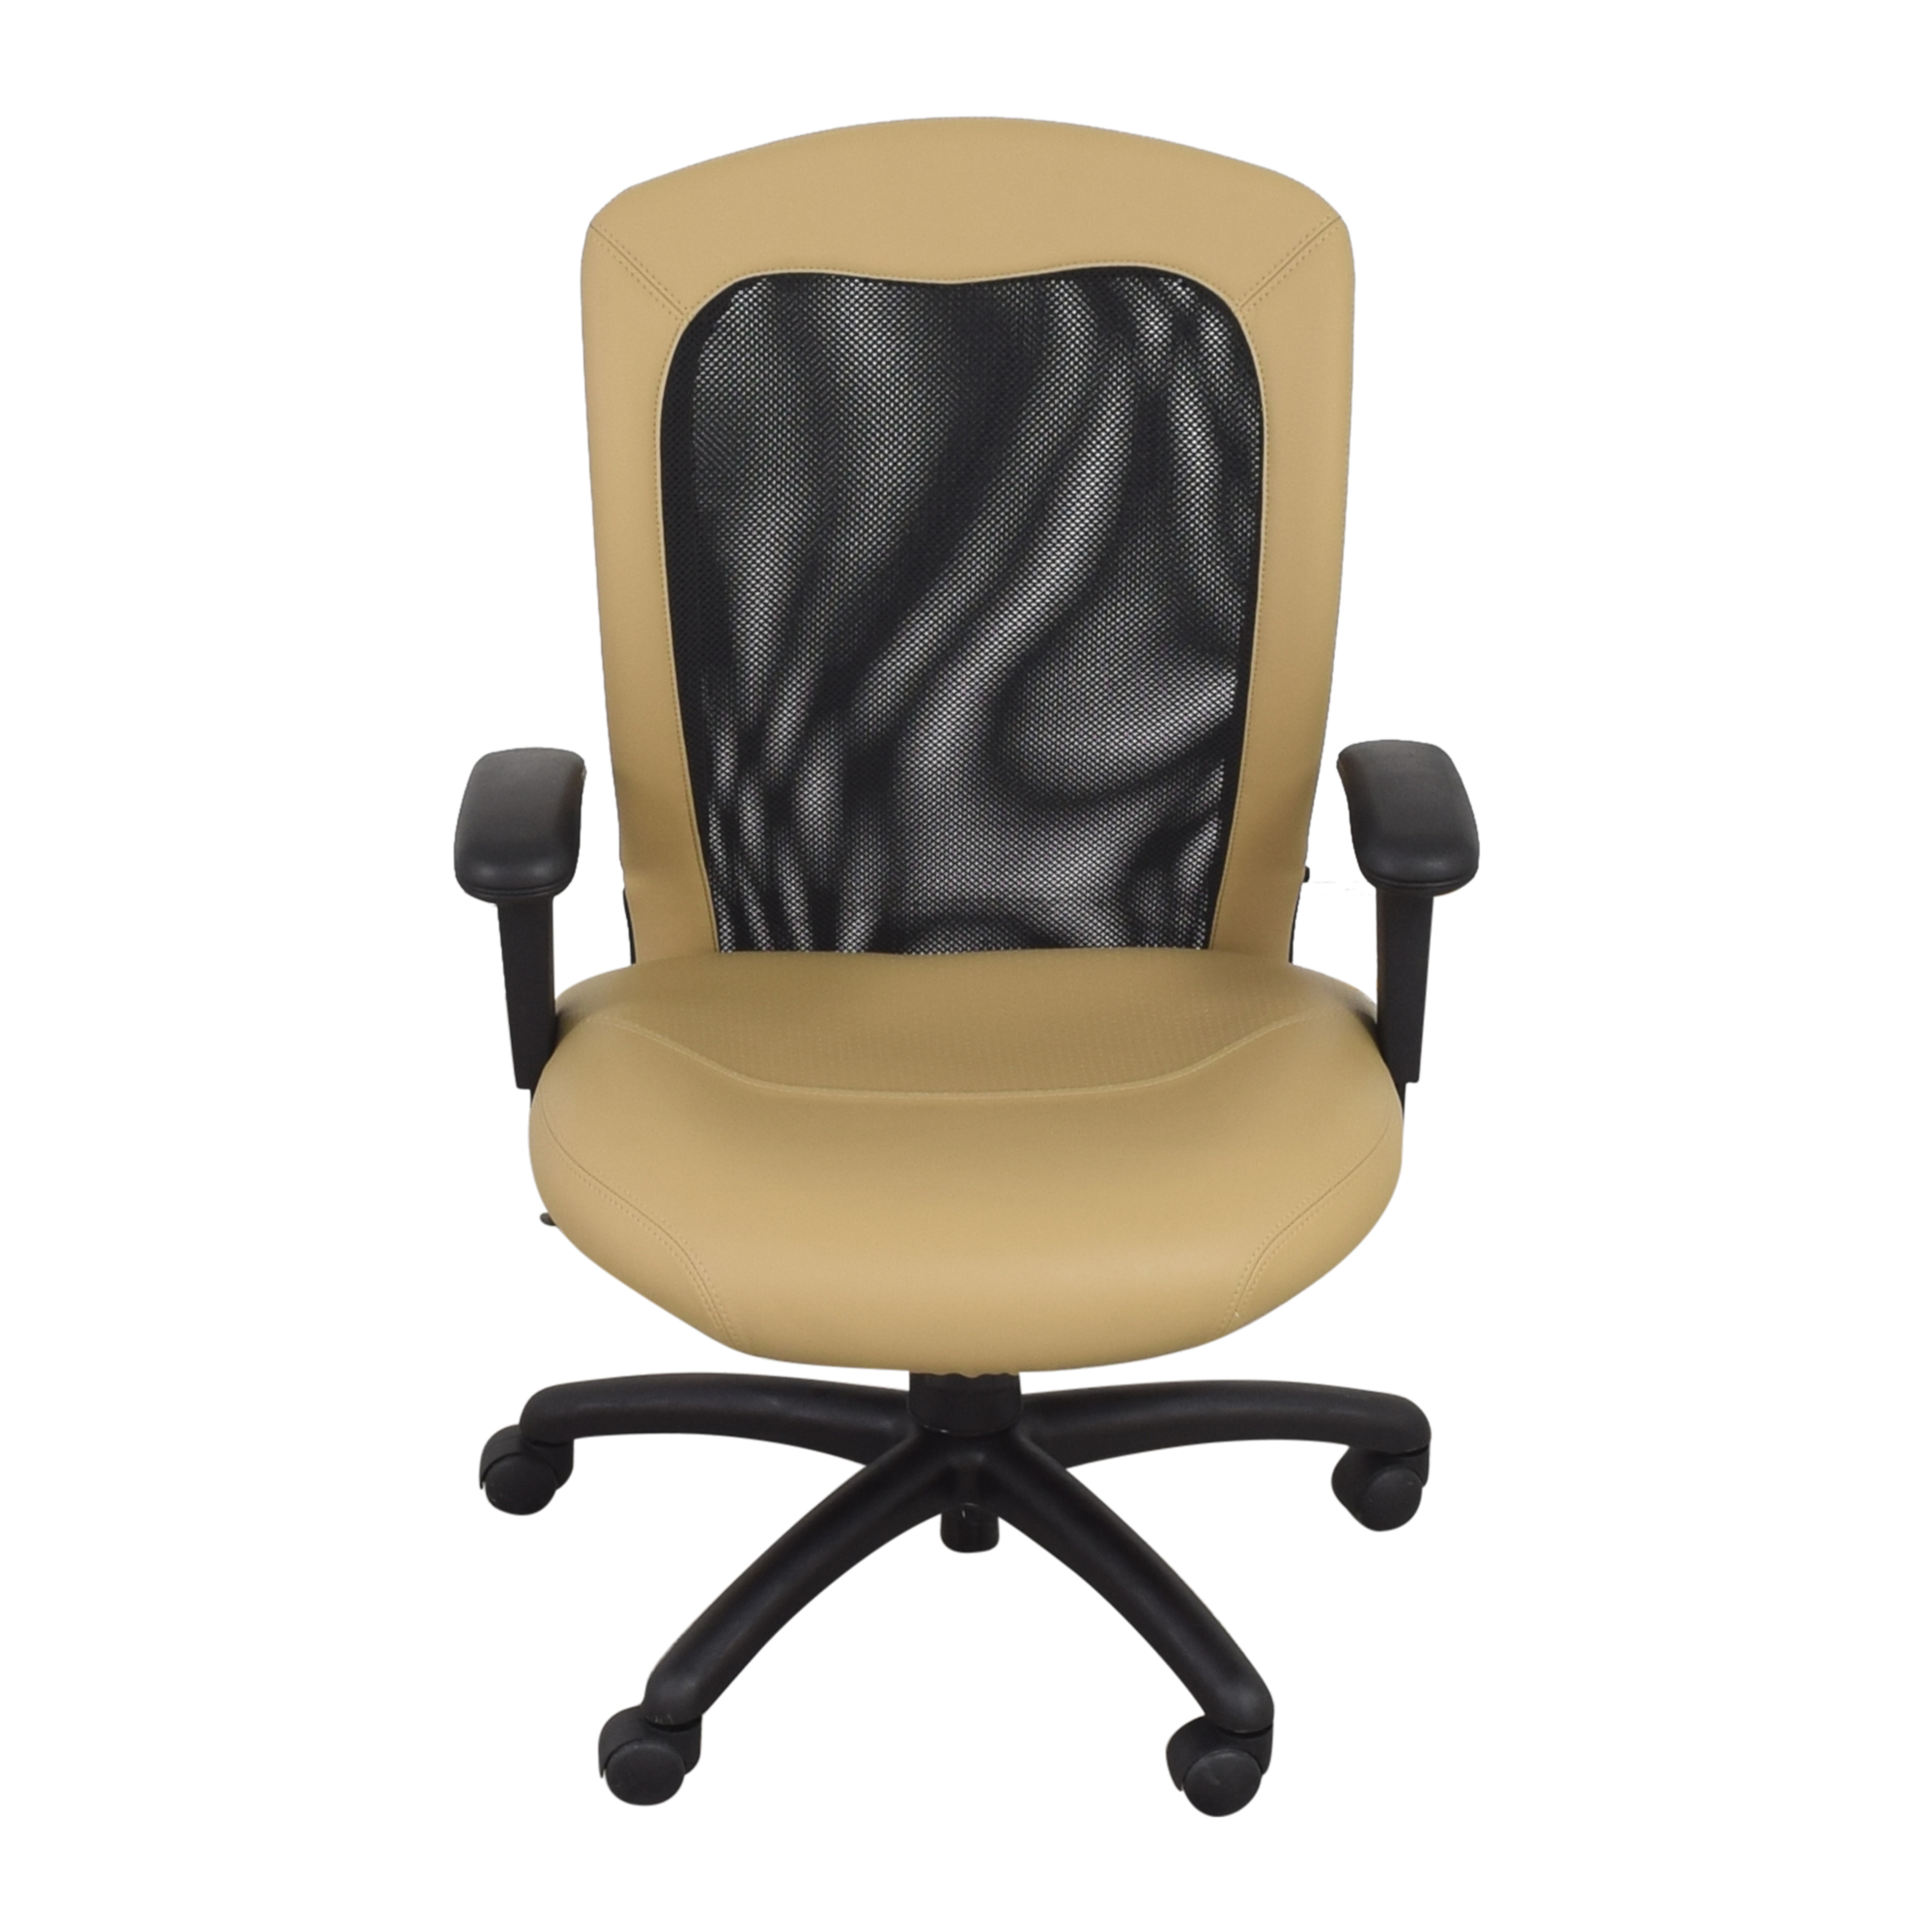 Offices to Go Offices to Go Mesh Back Tilter Office Chair Home Office Chairs